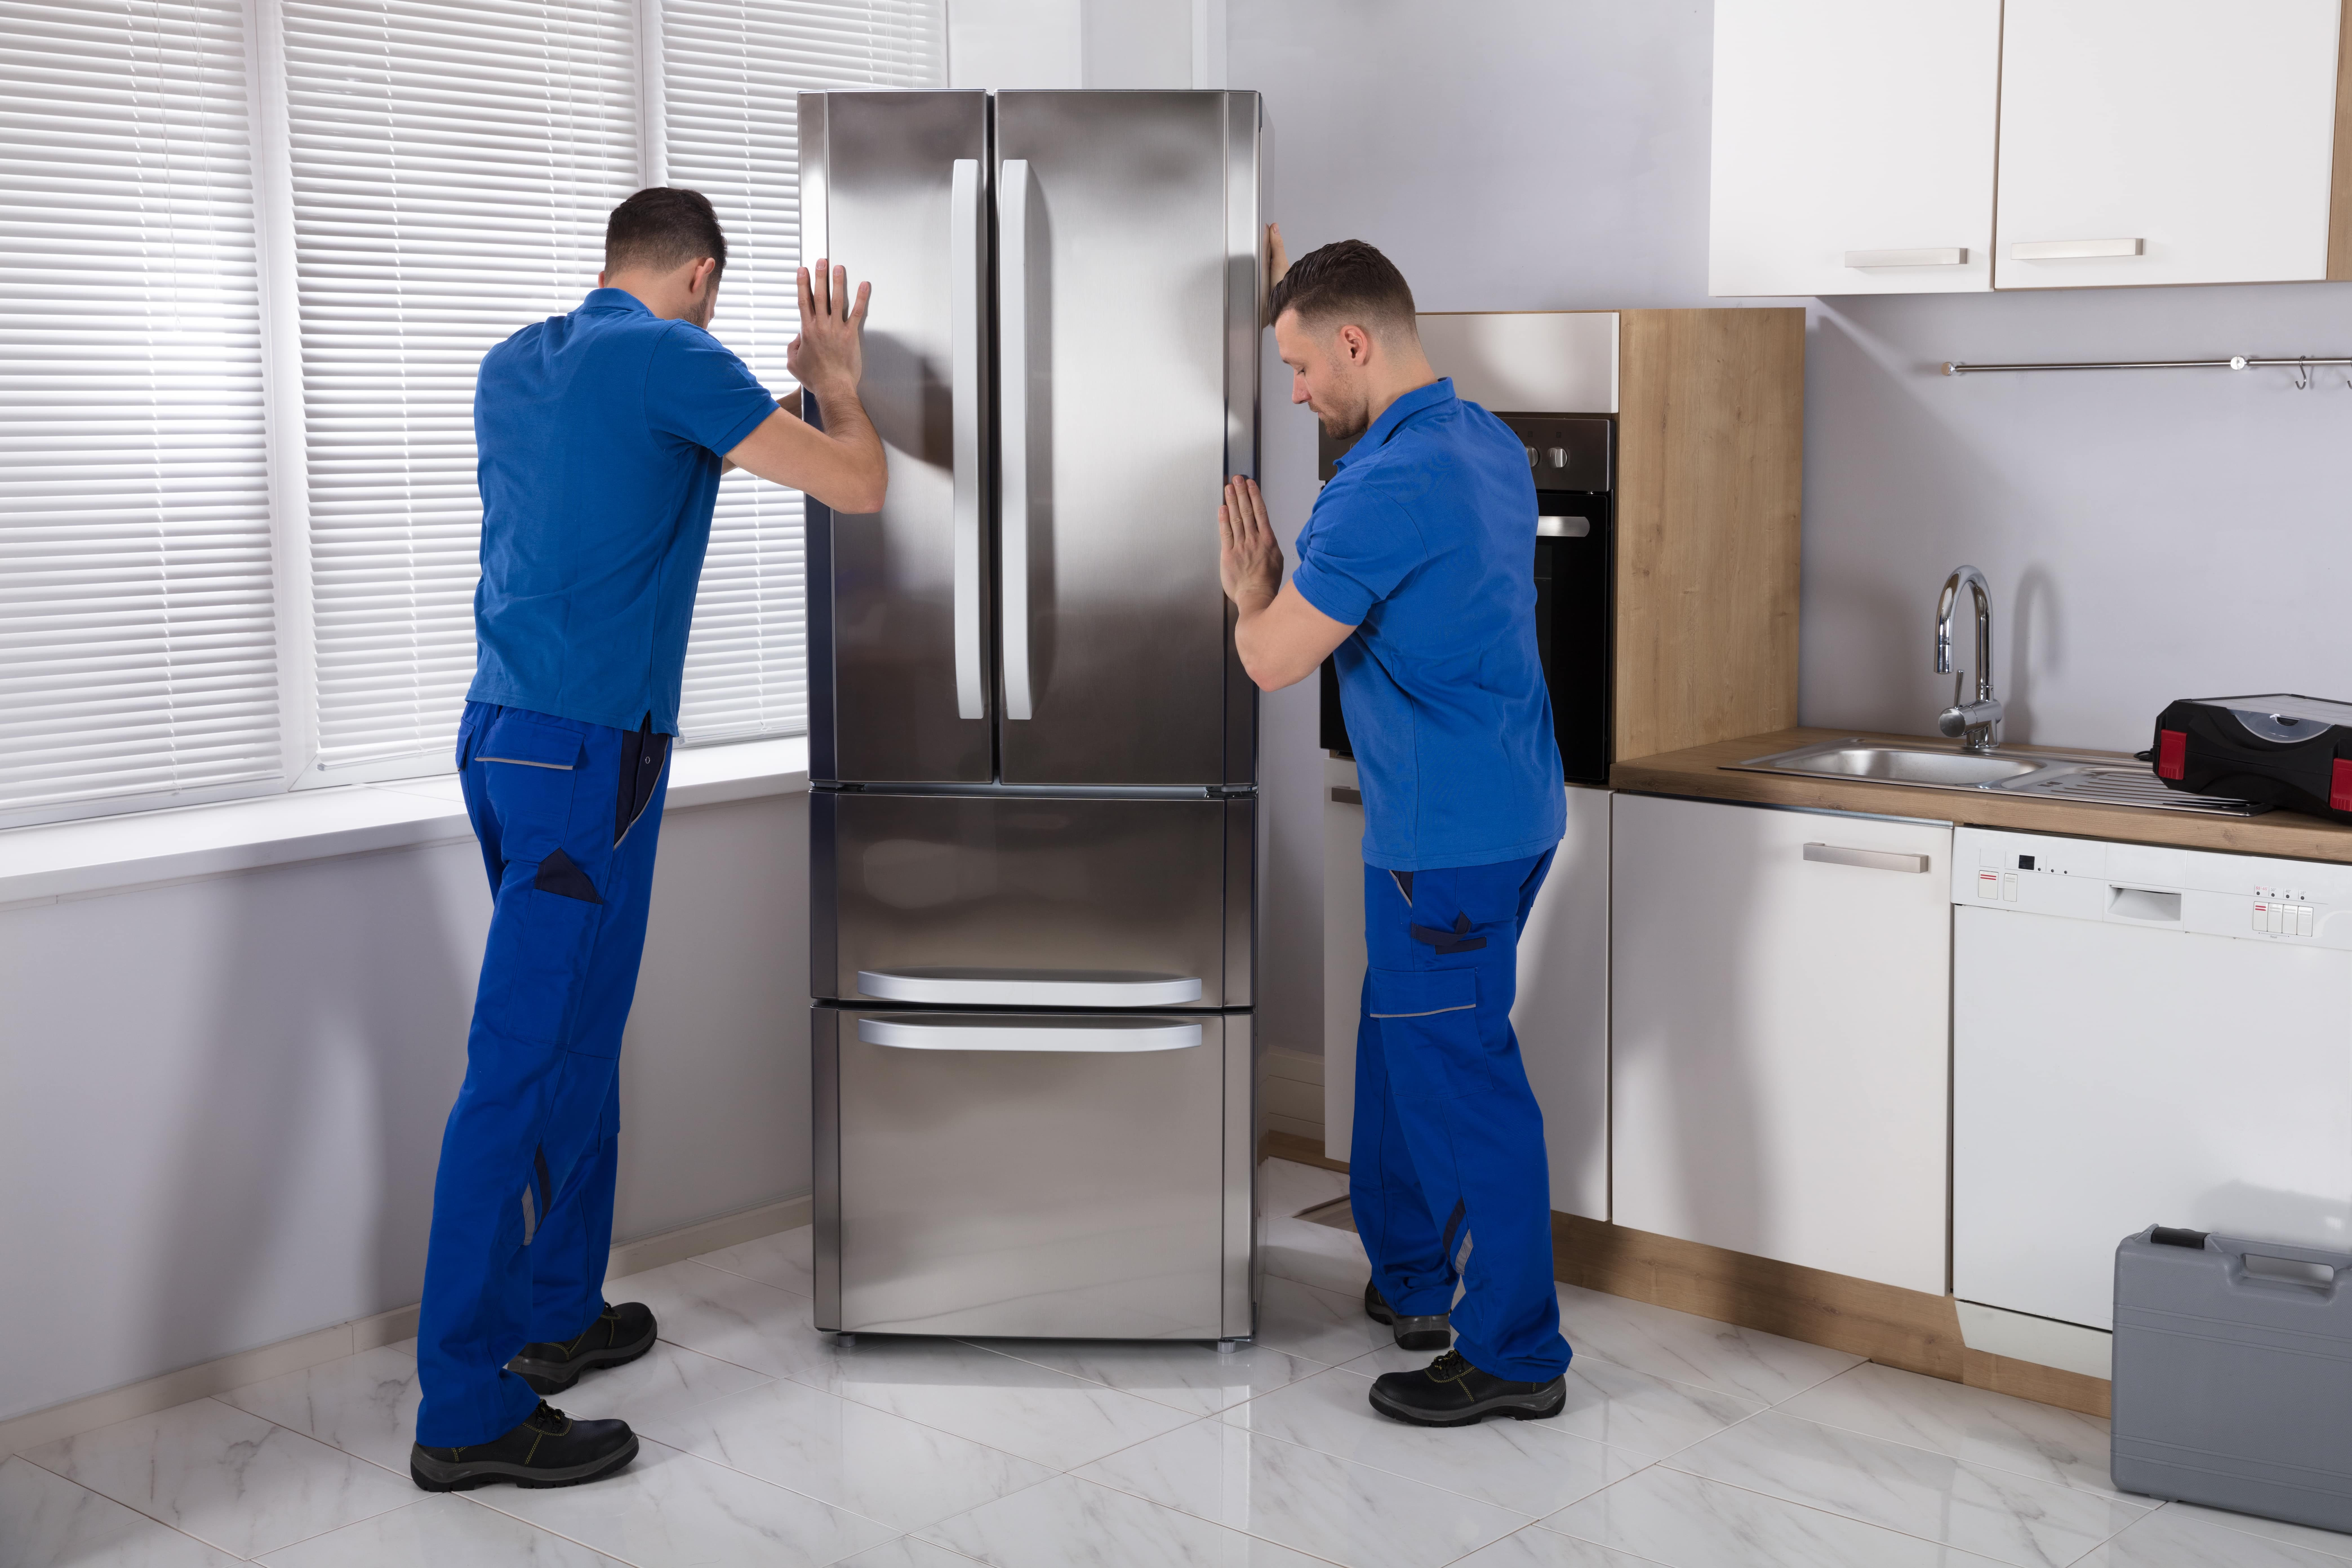 Canada's Appliance Repairing Needs Specialized Knowledge